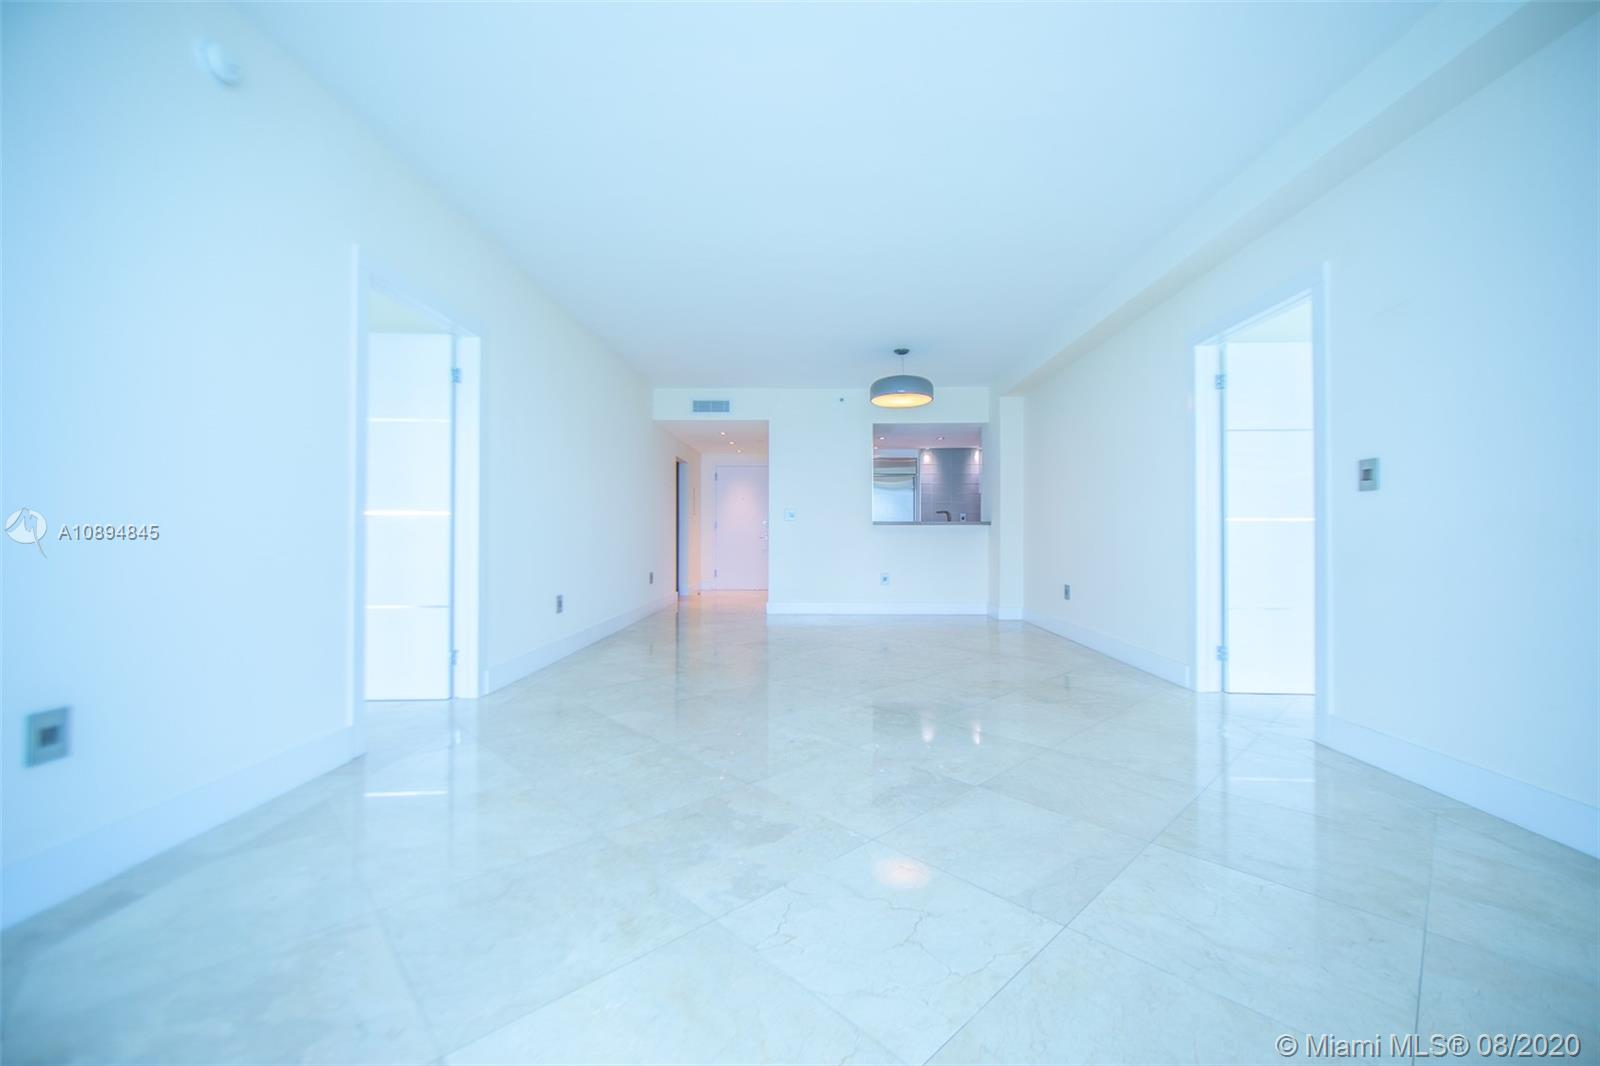 Bentley Bay South Tower #602 - 520 West Ave #602, Miami Beach, FL 33139